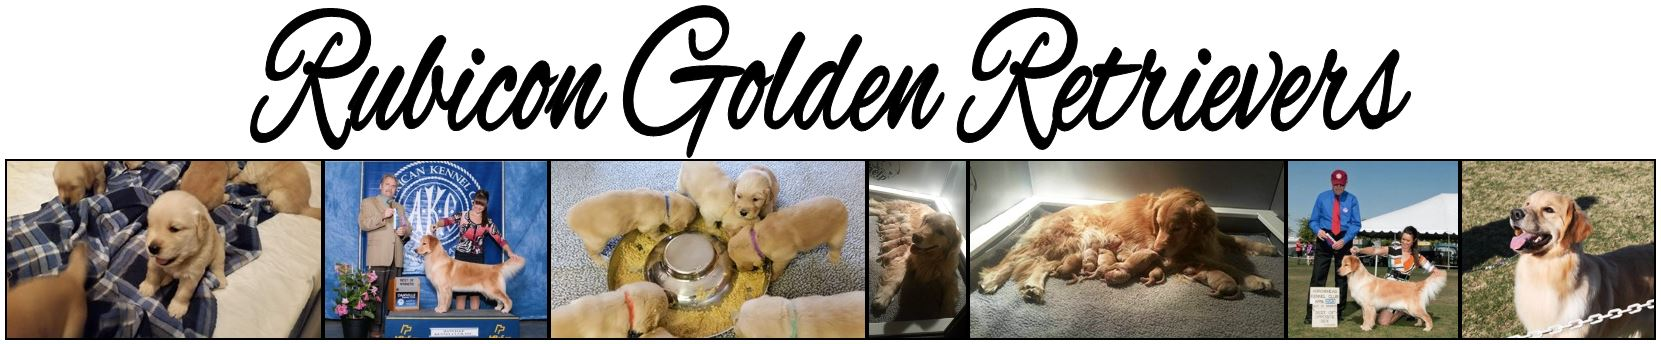 Rubicon Golden Retrievers